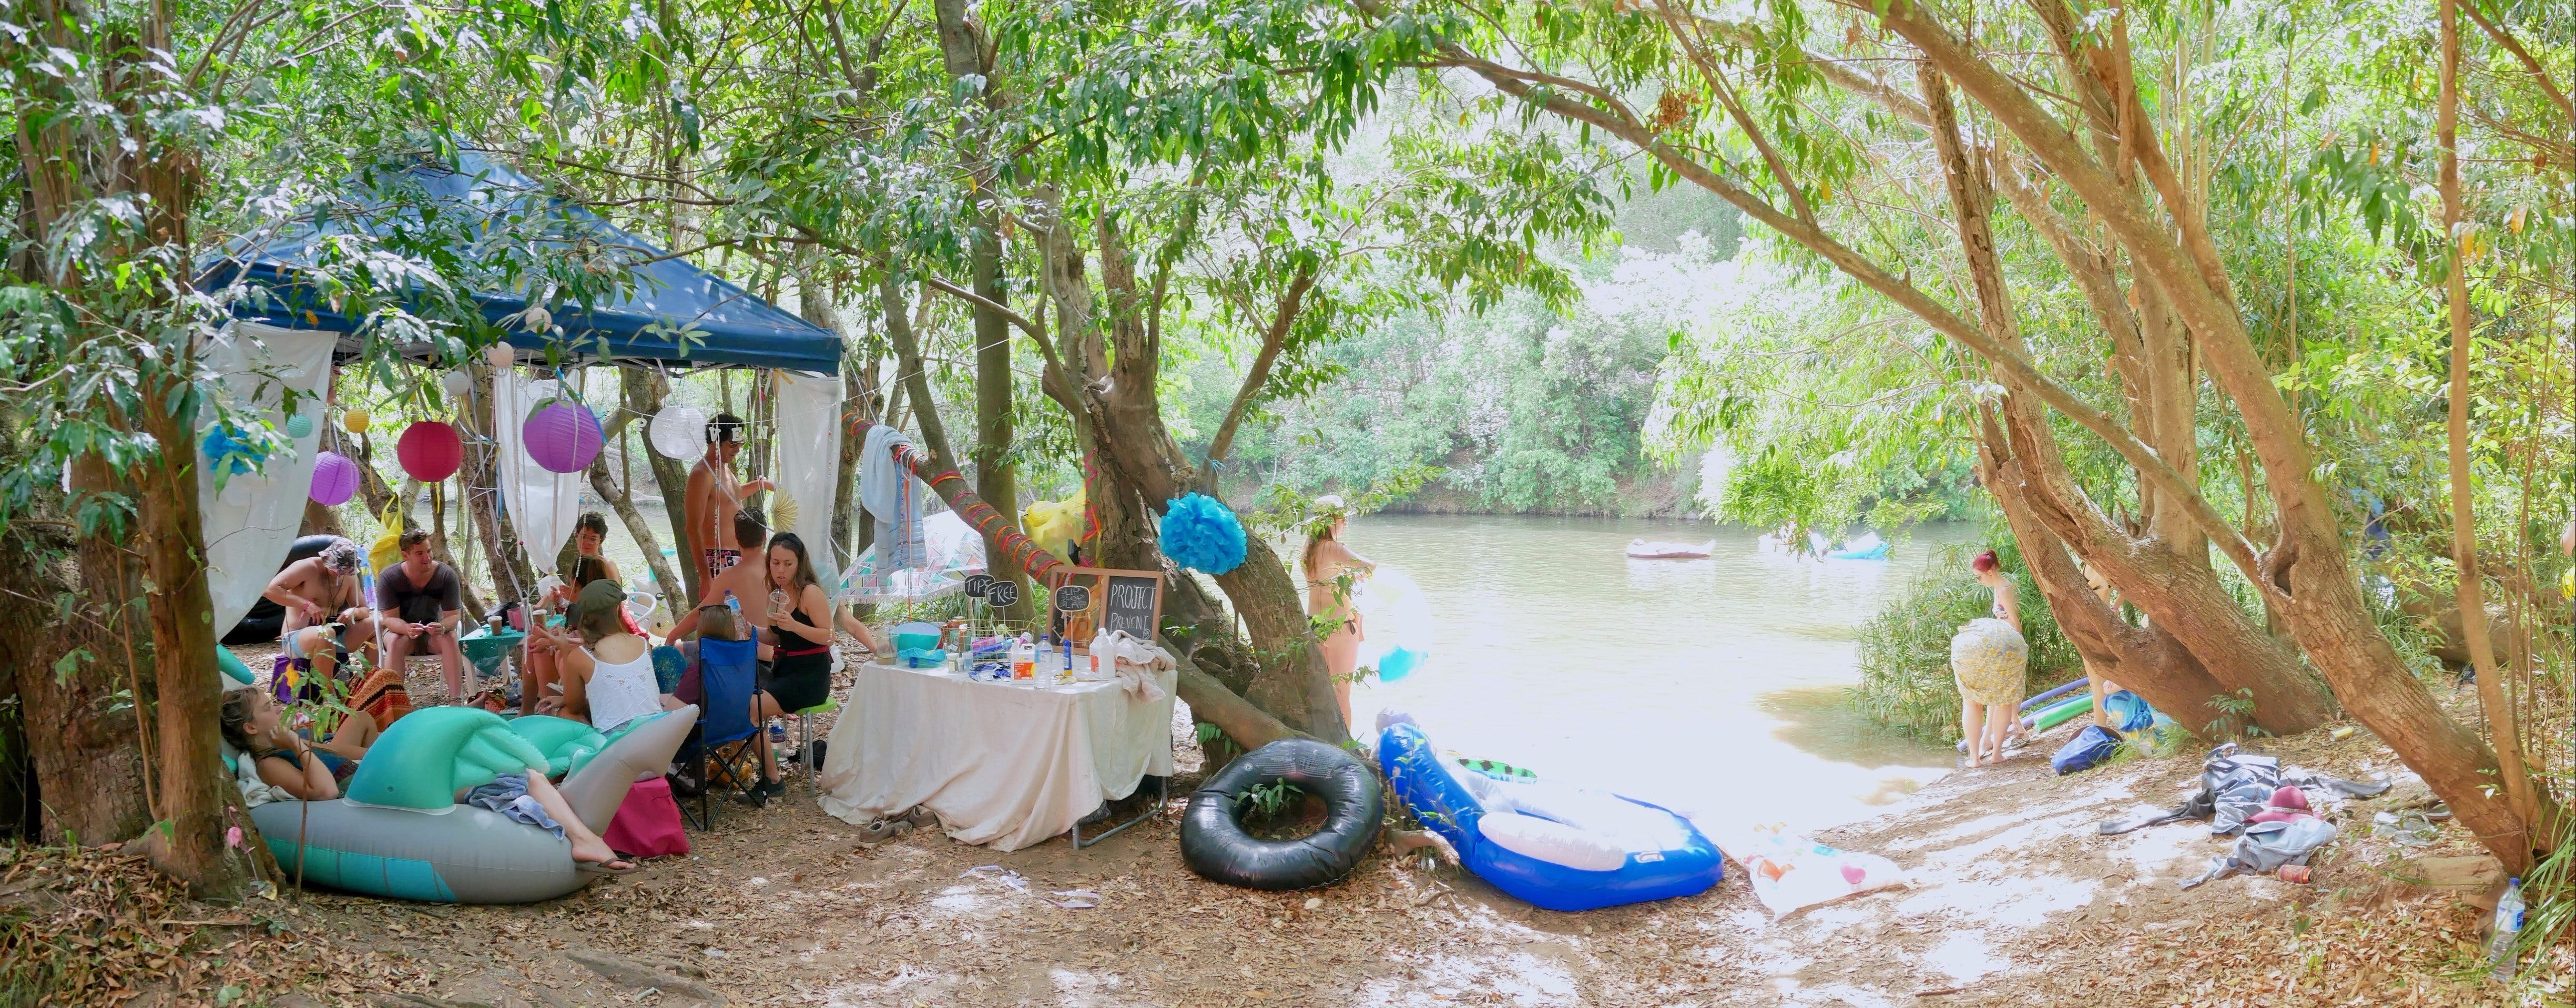 Jungle Love Festival - Townsville Tourism